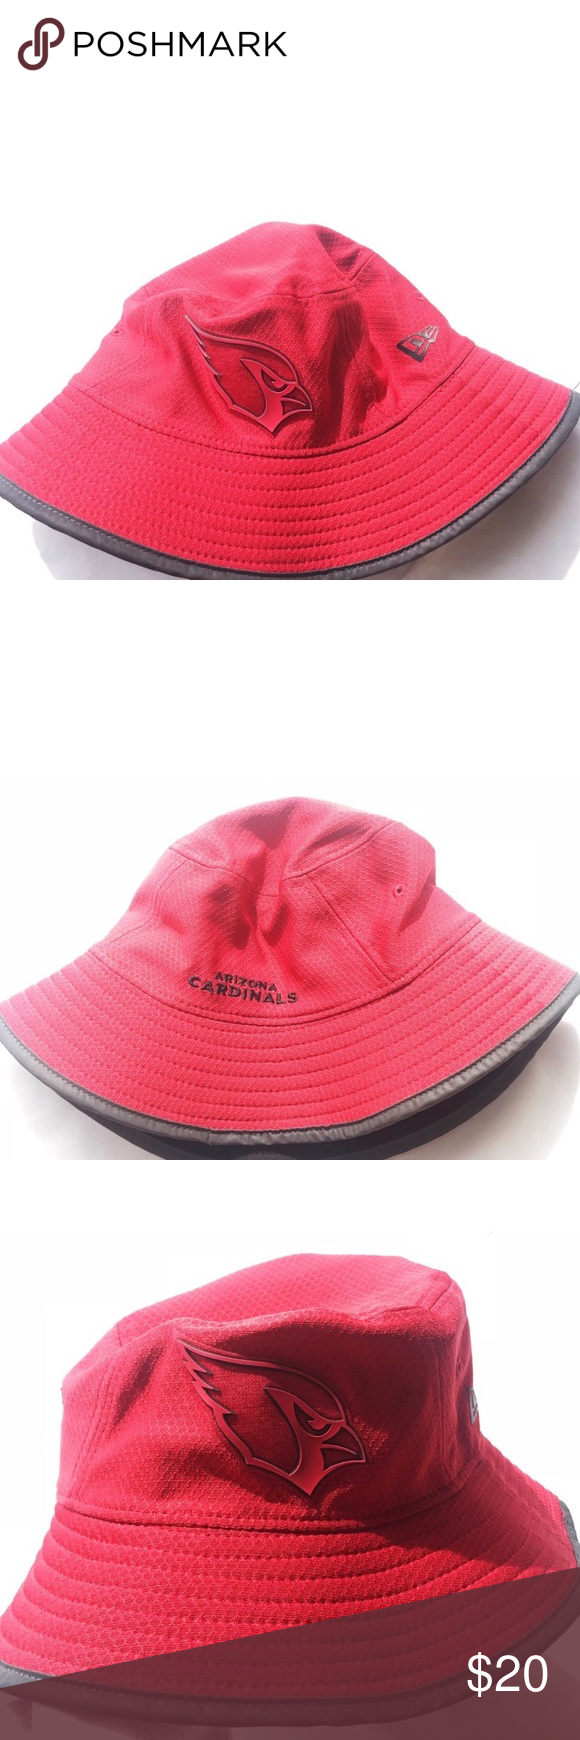 42ad973cda6 Arizona Cardinals Football NFL Bucket Hat - Arizona Cardinals NFL Red Bucket  Hat - Red bucket